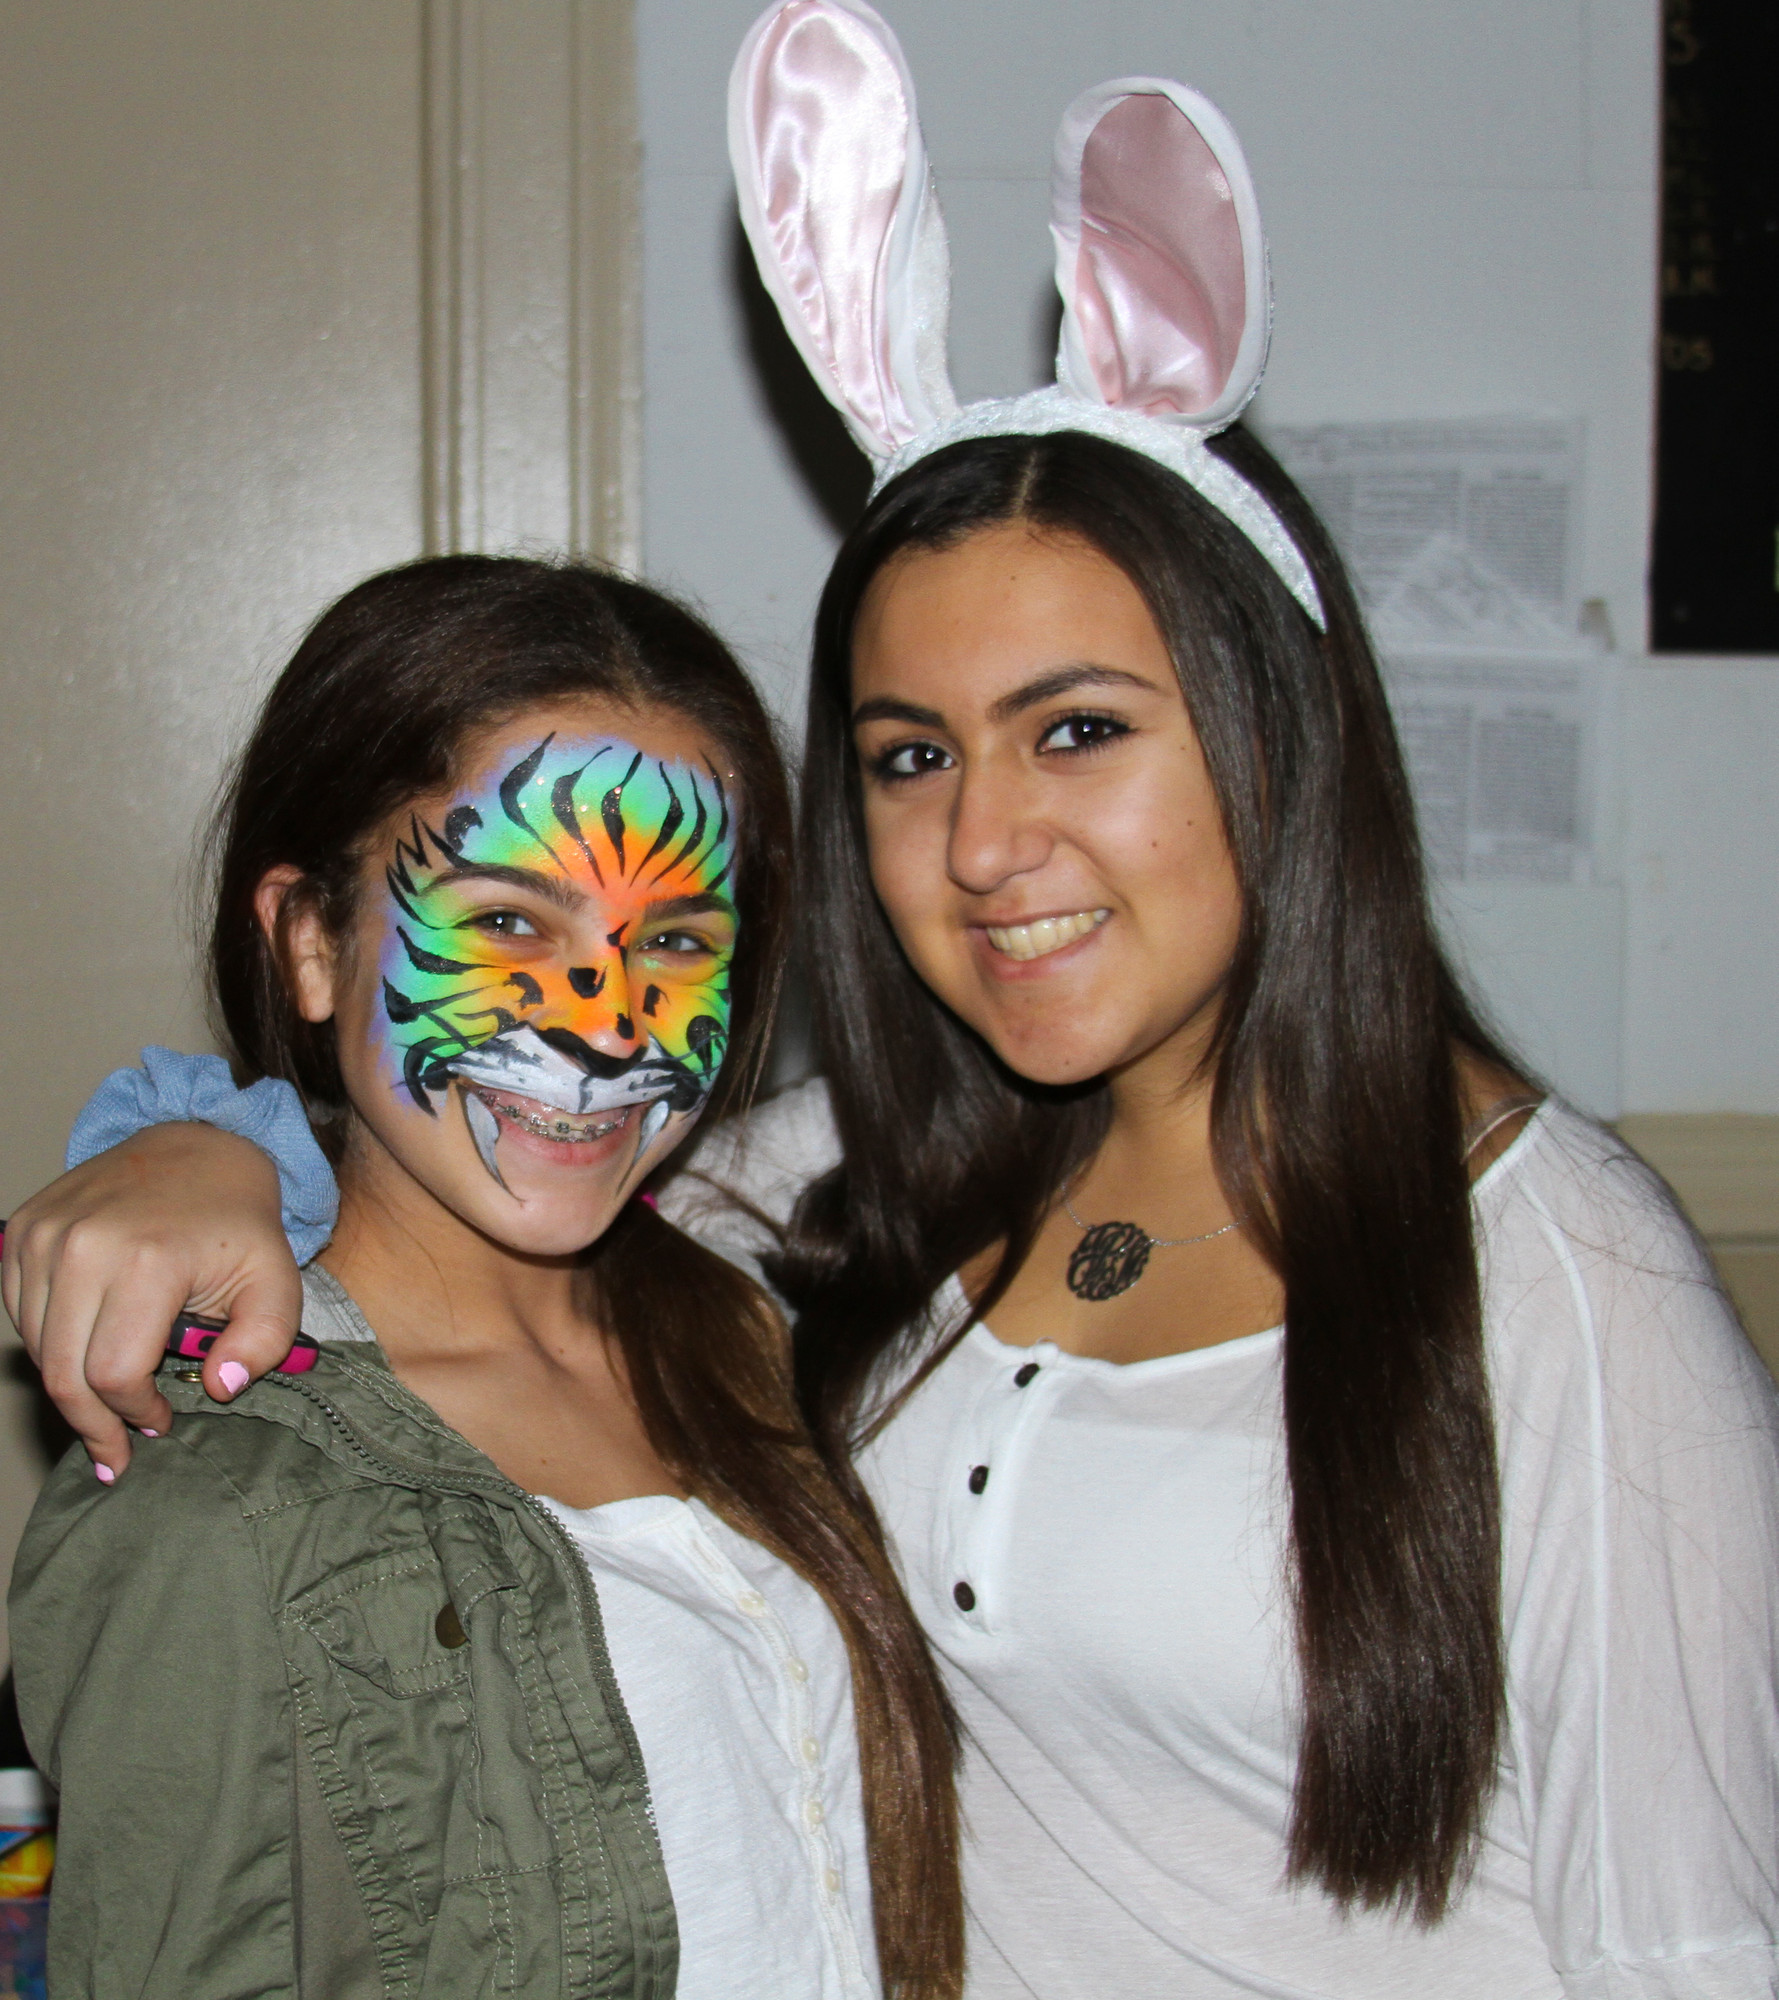 Chabad's Purim Party had an African theme. Ruby Levine, left, had her face painted as a rainbow tiger, while Jessie Cohen dressed as a more domesticated animal.